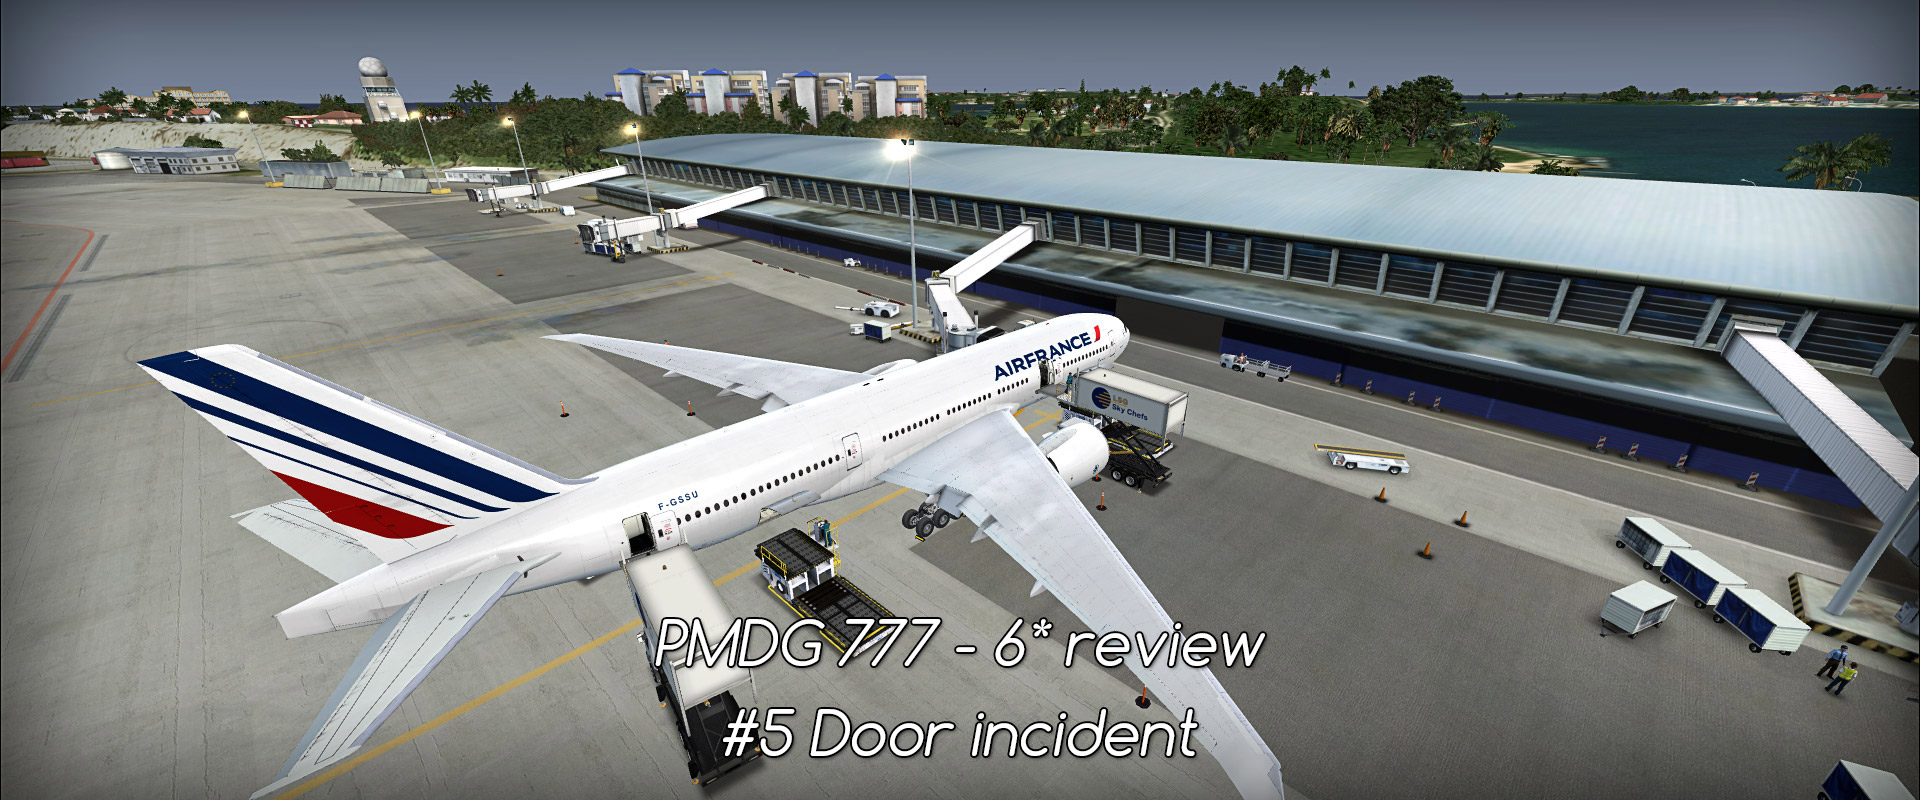 Boeing 777 – PMDG Part 4 Startup • C-Aviation